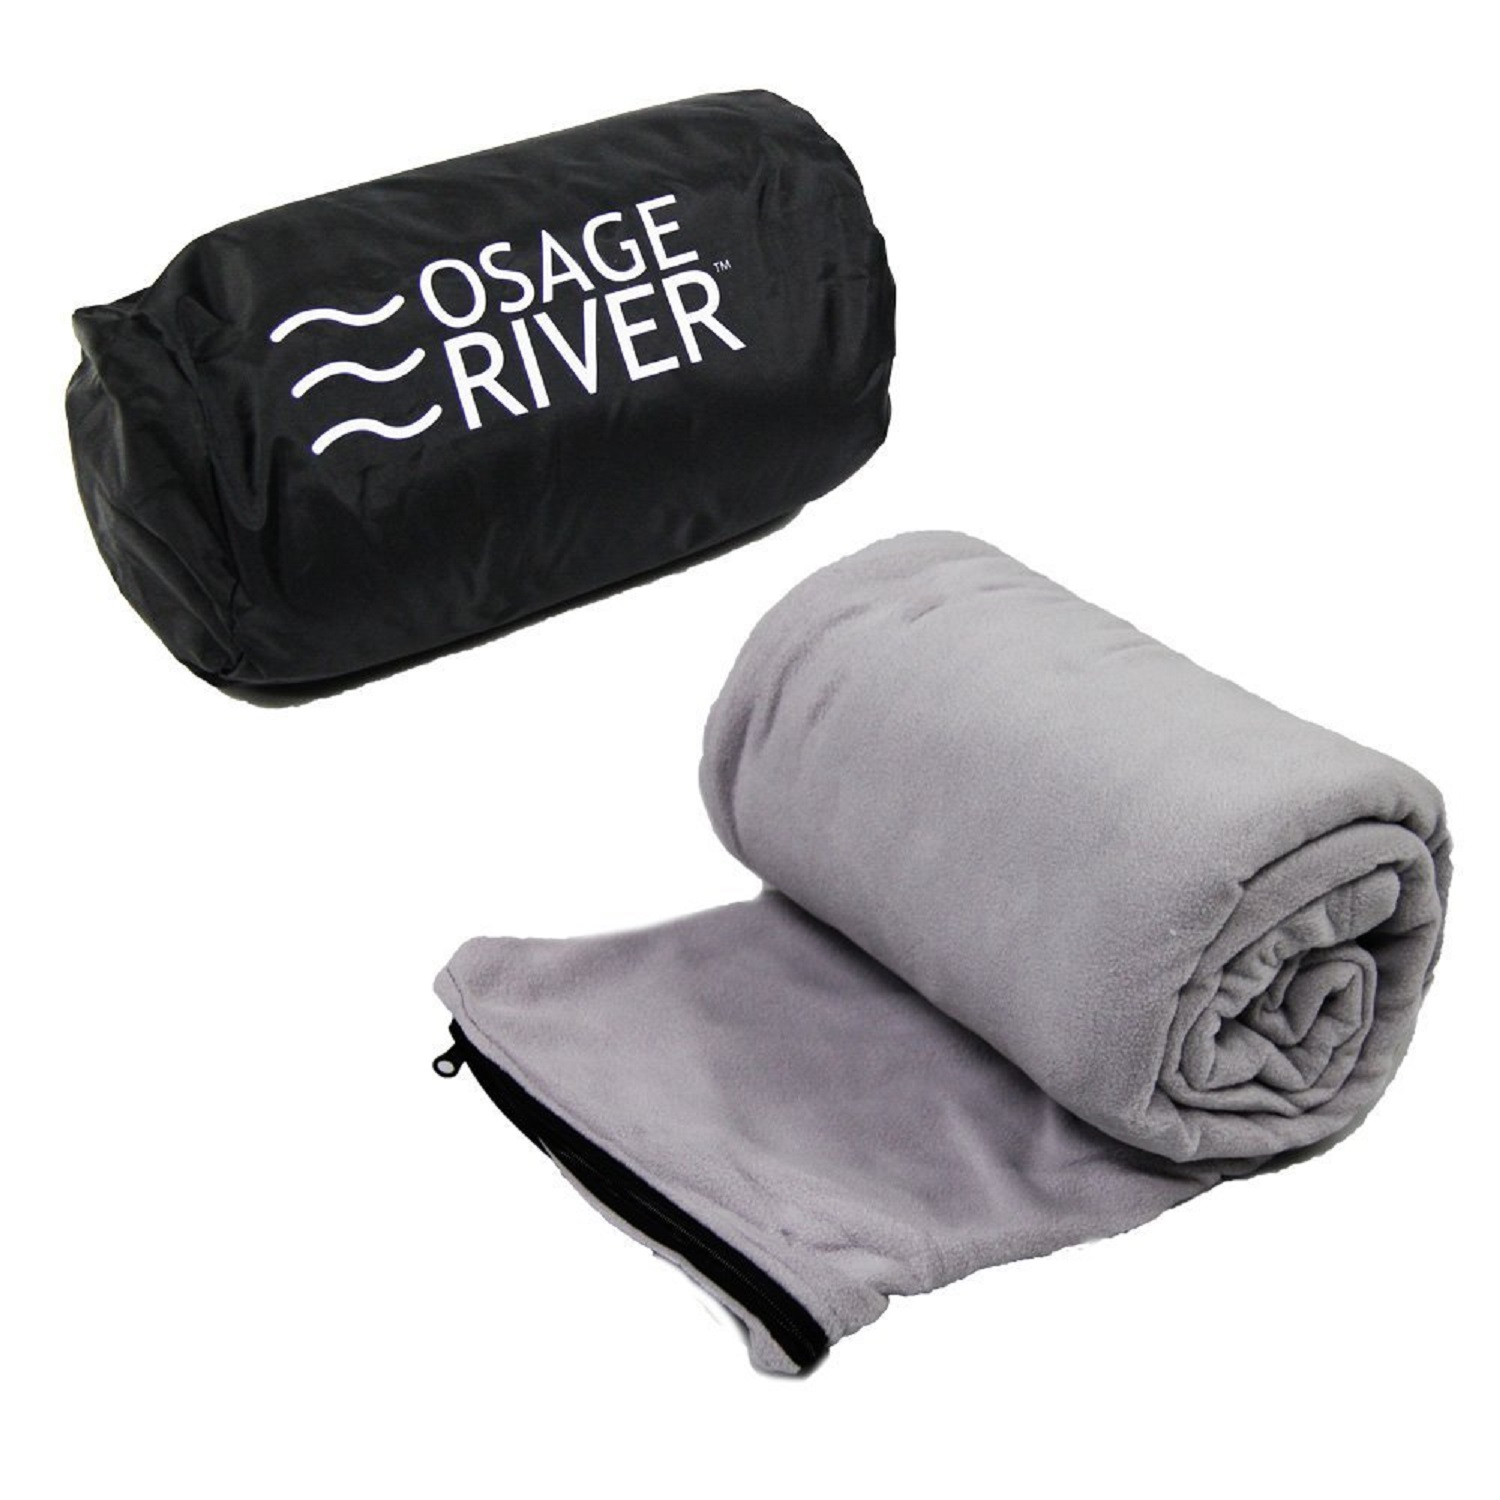 Osage River Microfiber Fleece Sleeping Bag Liner - Grey